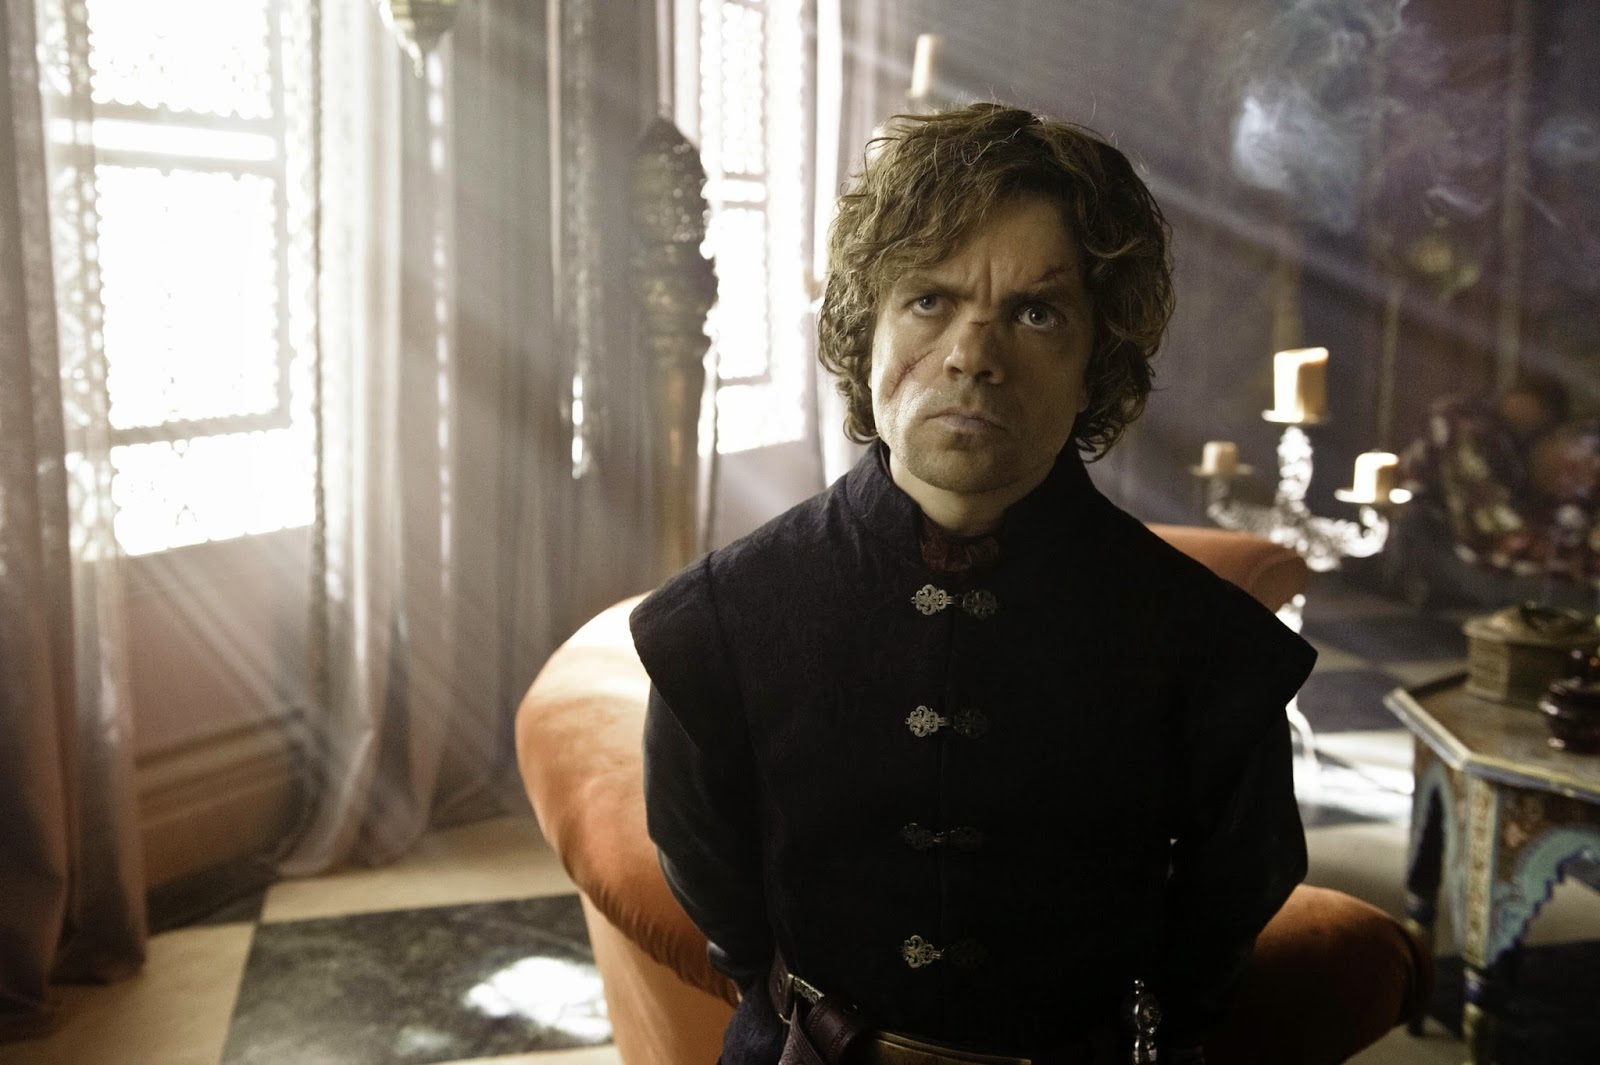 Tyrion Lannister, aka The Imp, played by Peter Dinklage, in Game of Thrones, HBO TV Series